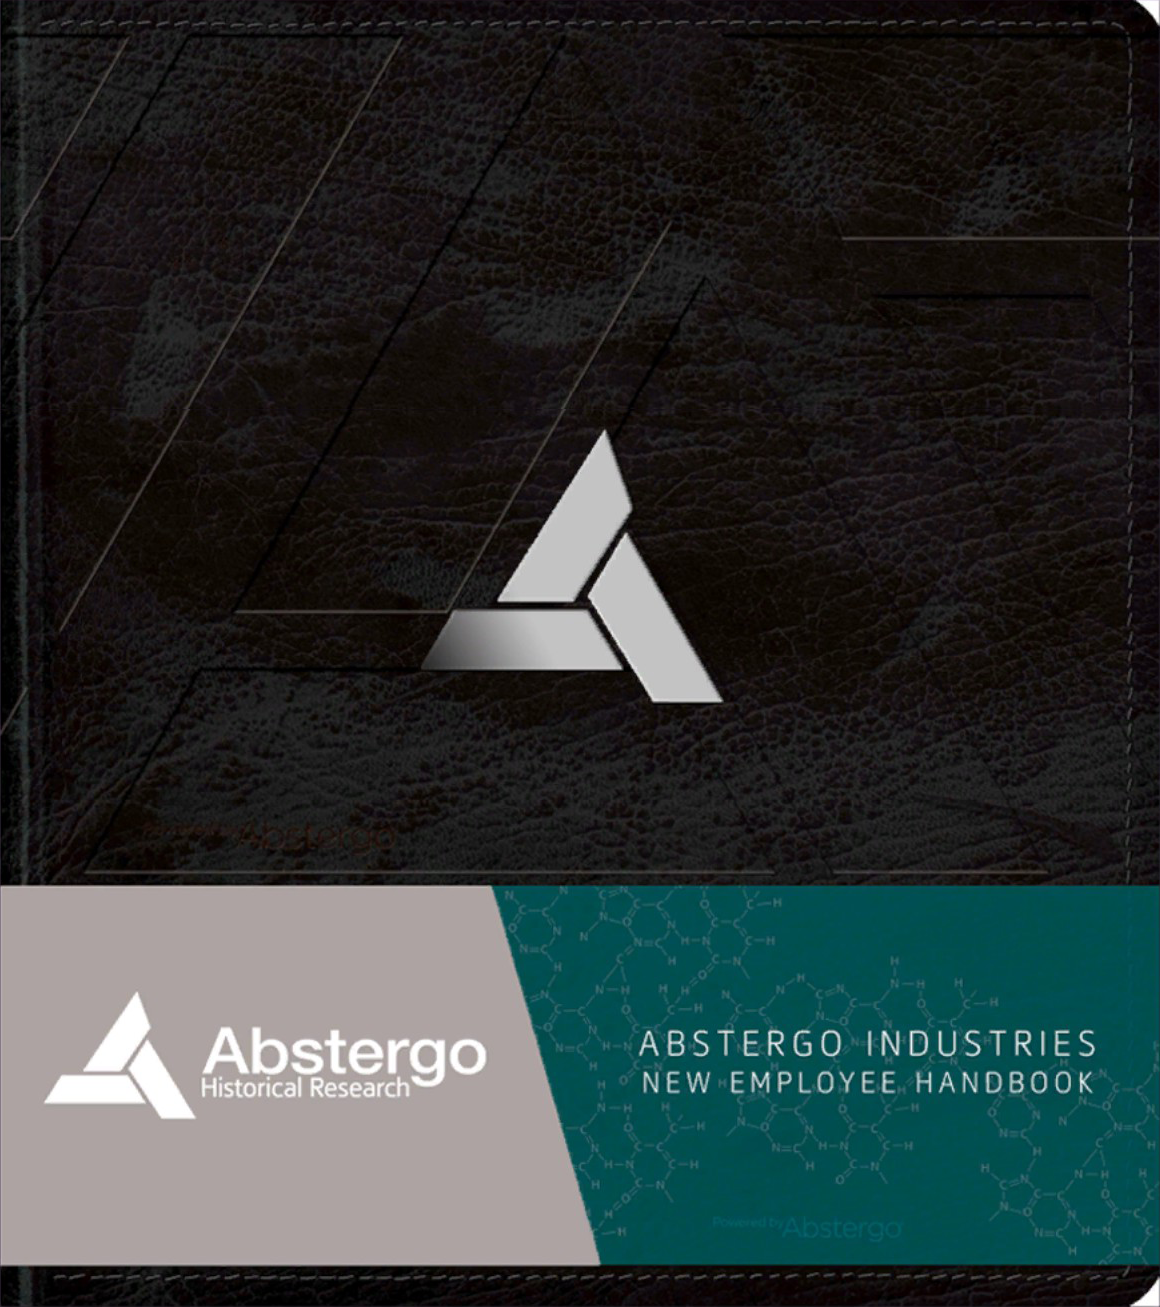 Abstergo Historical Research Division Files